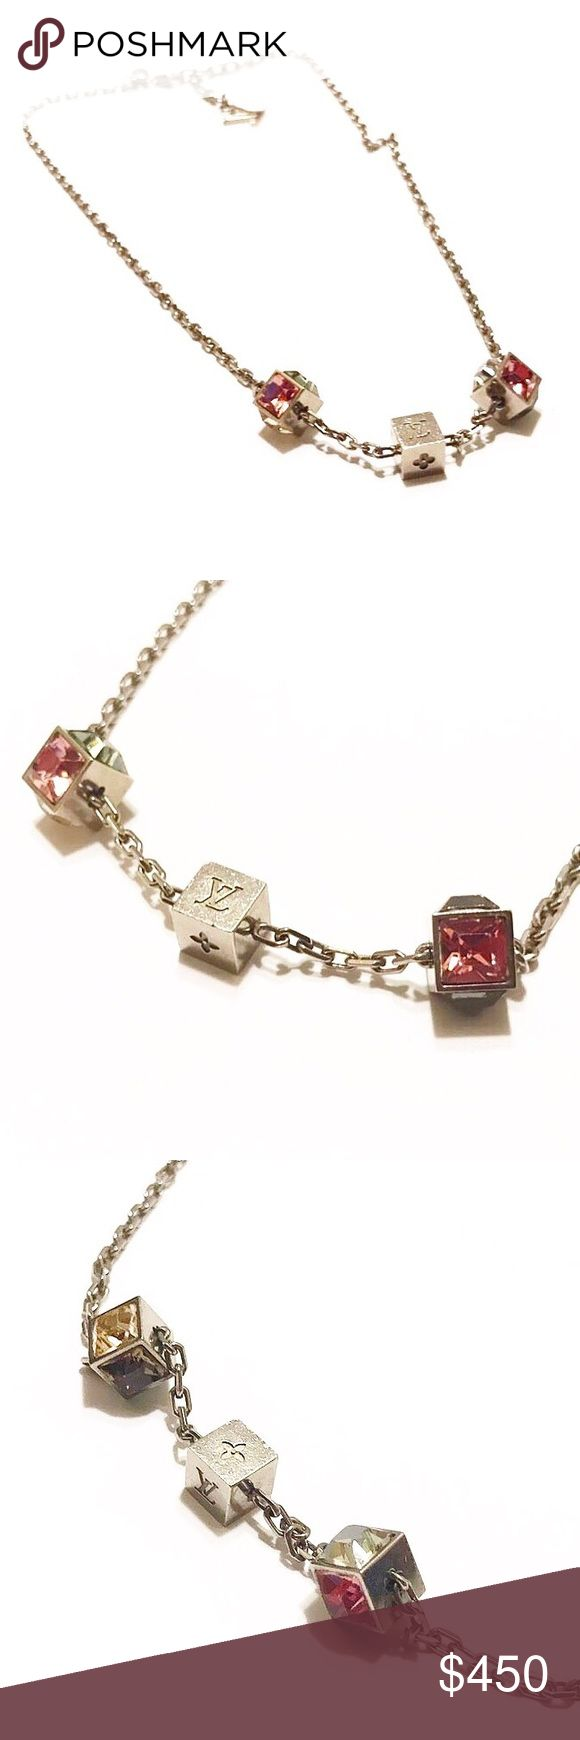 """Authentic Vuitton Swarovski Gamble Necklace Authentic Louis Vuitton Gamble Necklace/Includes LV Storage Box/Date Code:GL1101/Made in Italy/Silver-Tone and Swarovski Crystals/Necklace measures 19""""(adjustable) Louis Vuitton Jewelry Necklaces"""